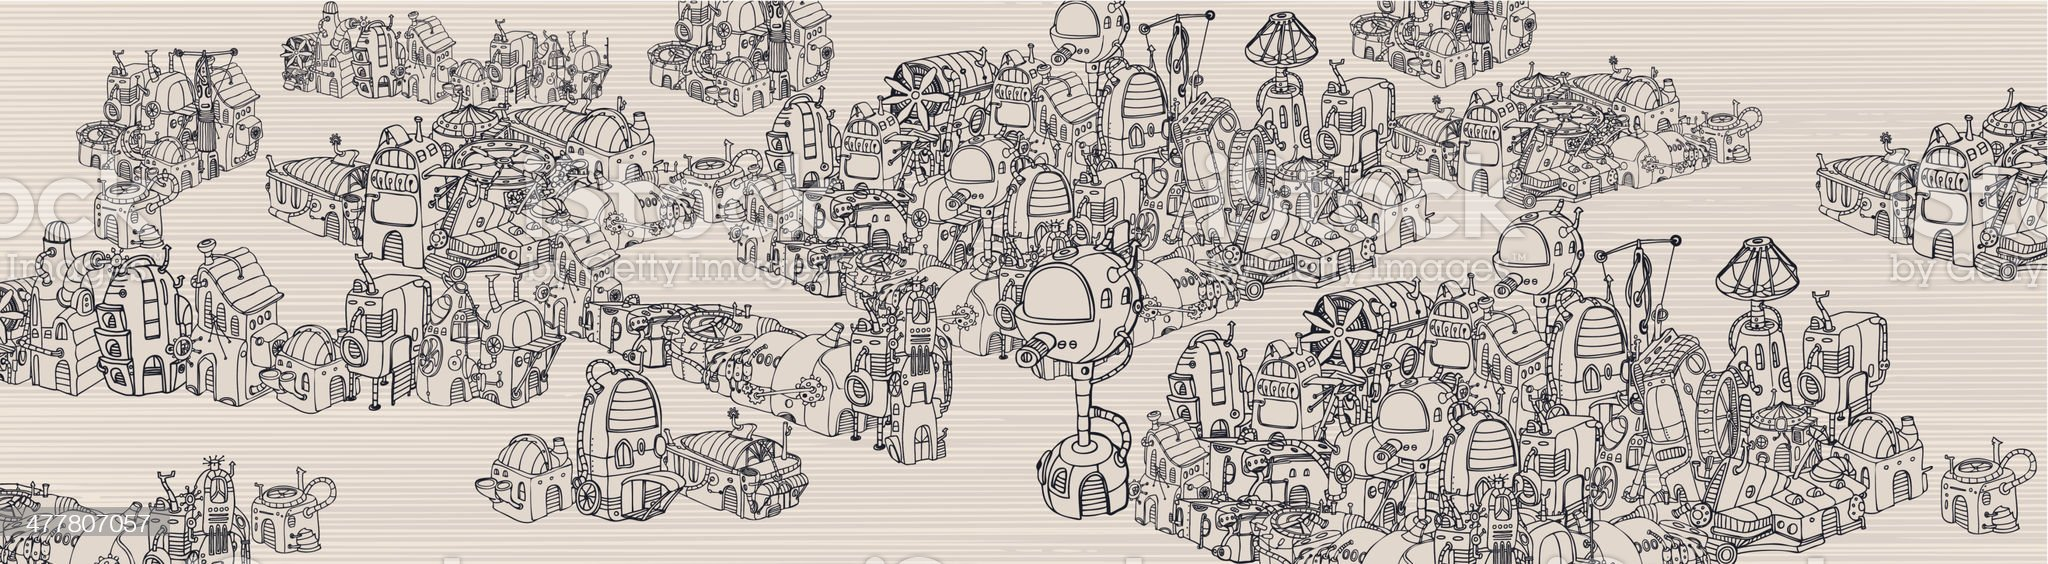 Steam city map. royalty-free stock vector art